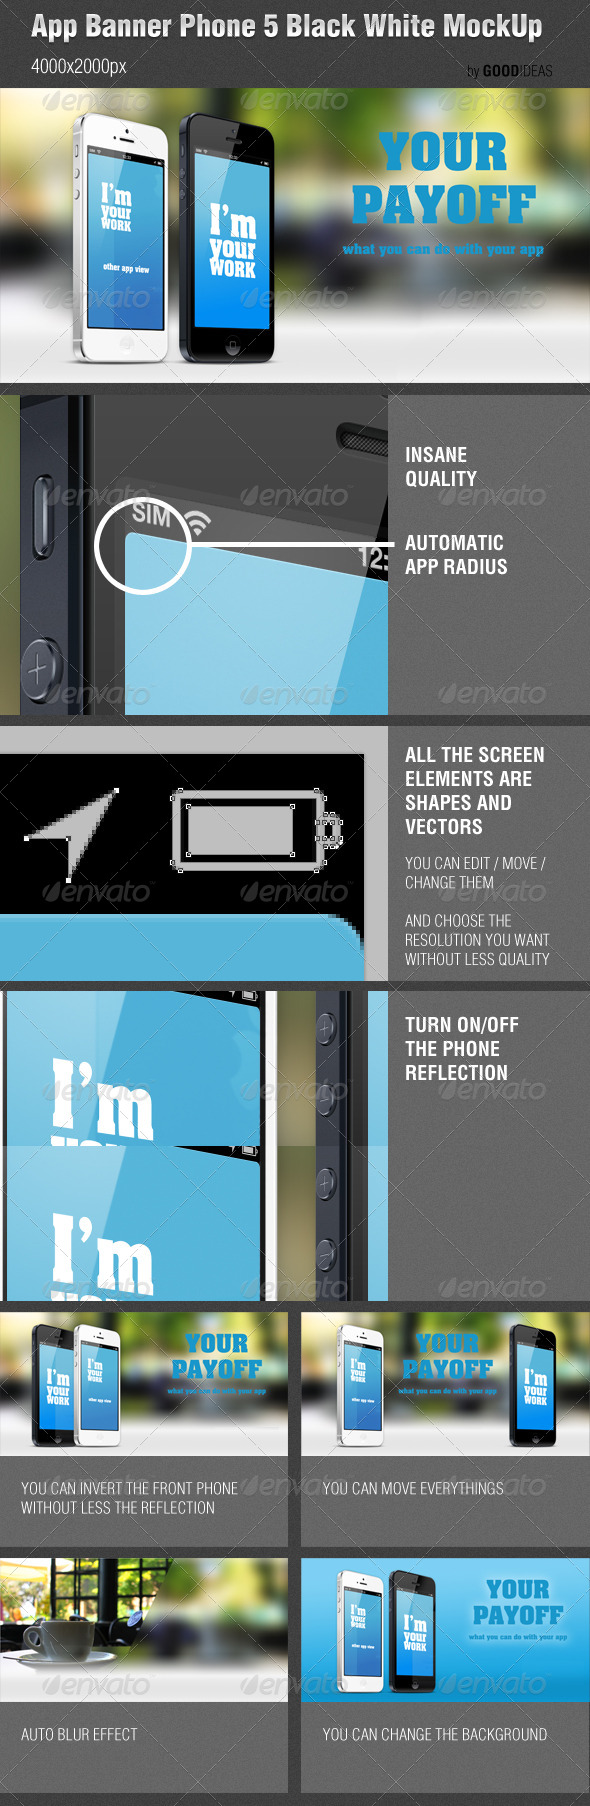 App Banner iPhone 5 Black White MockUp Real Photo - Mobile Displays